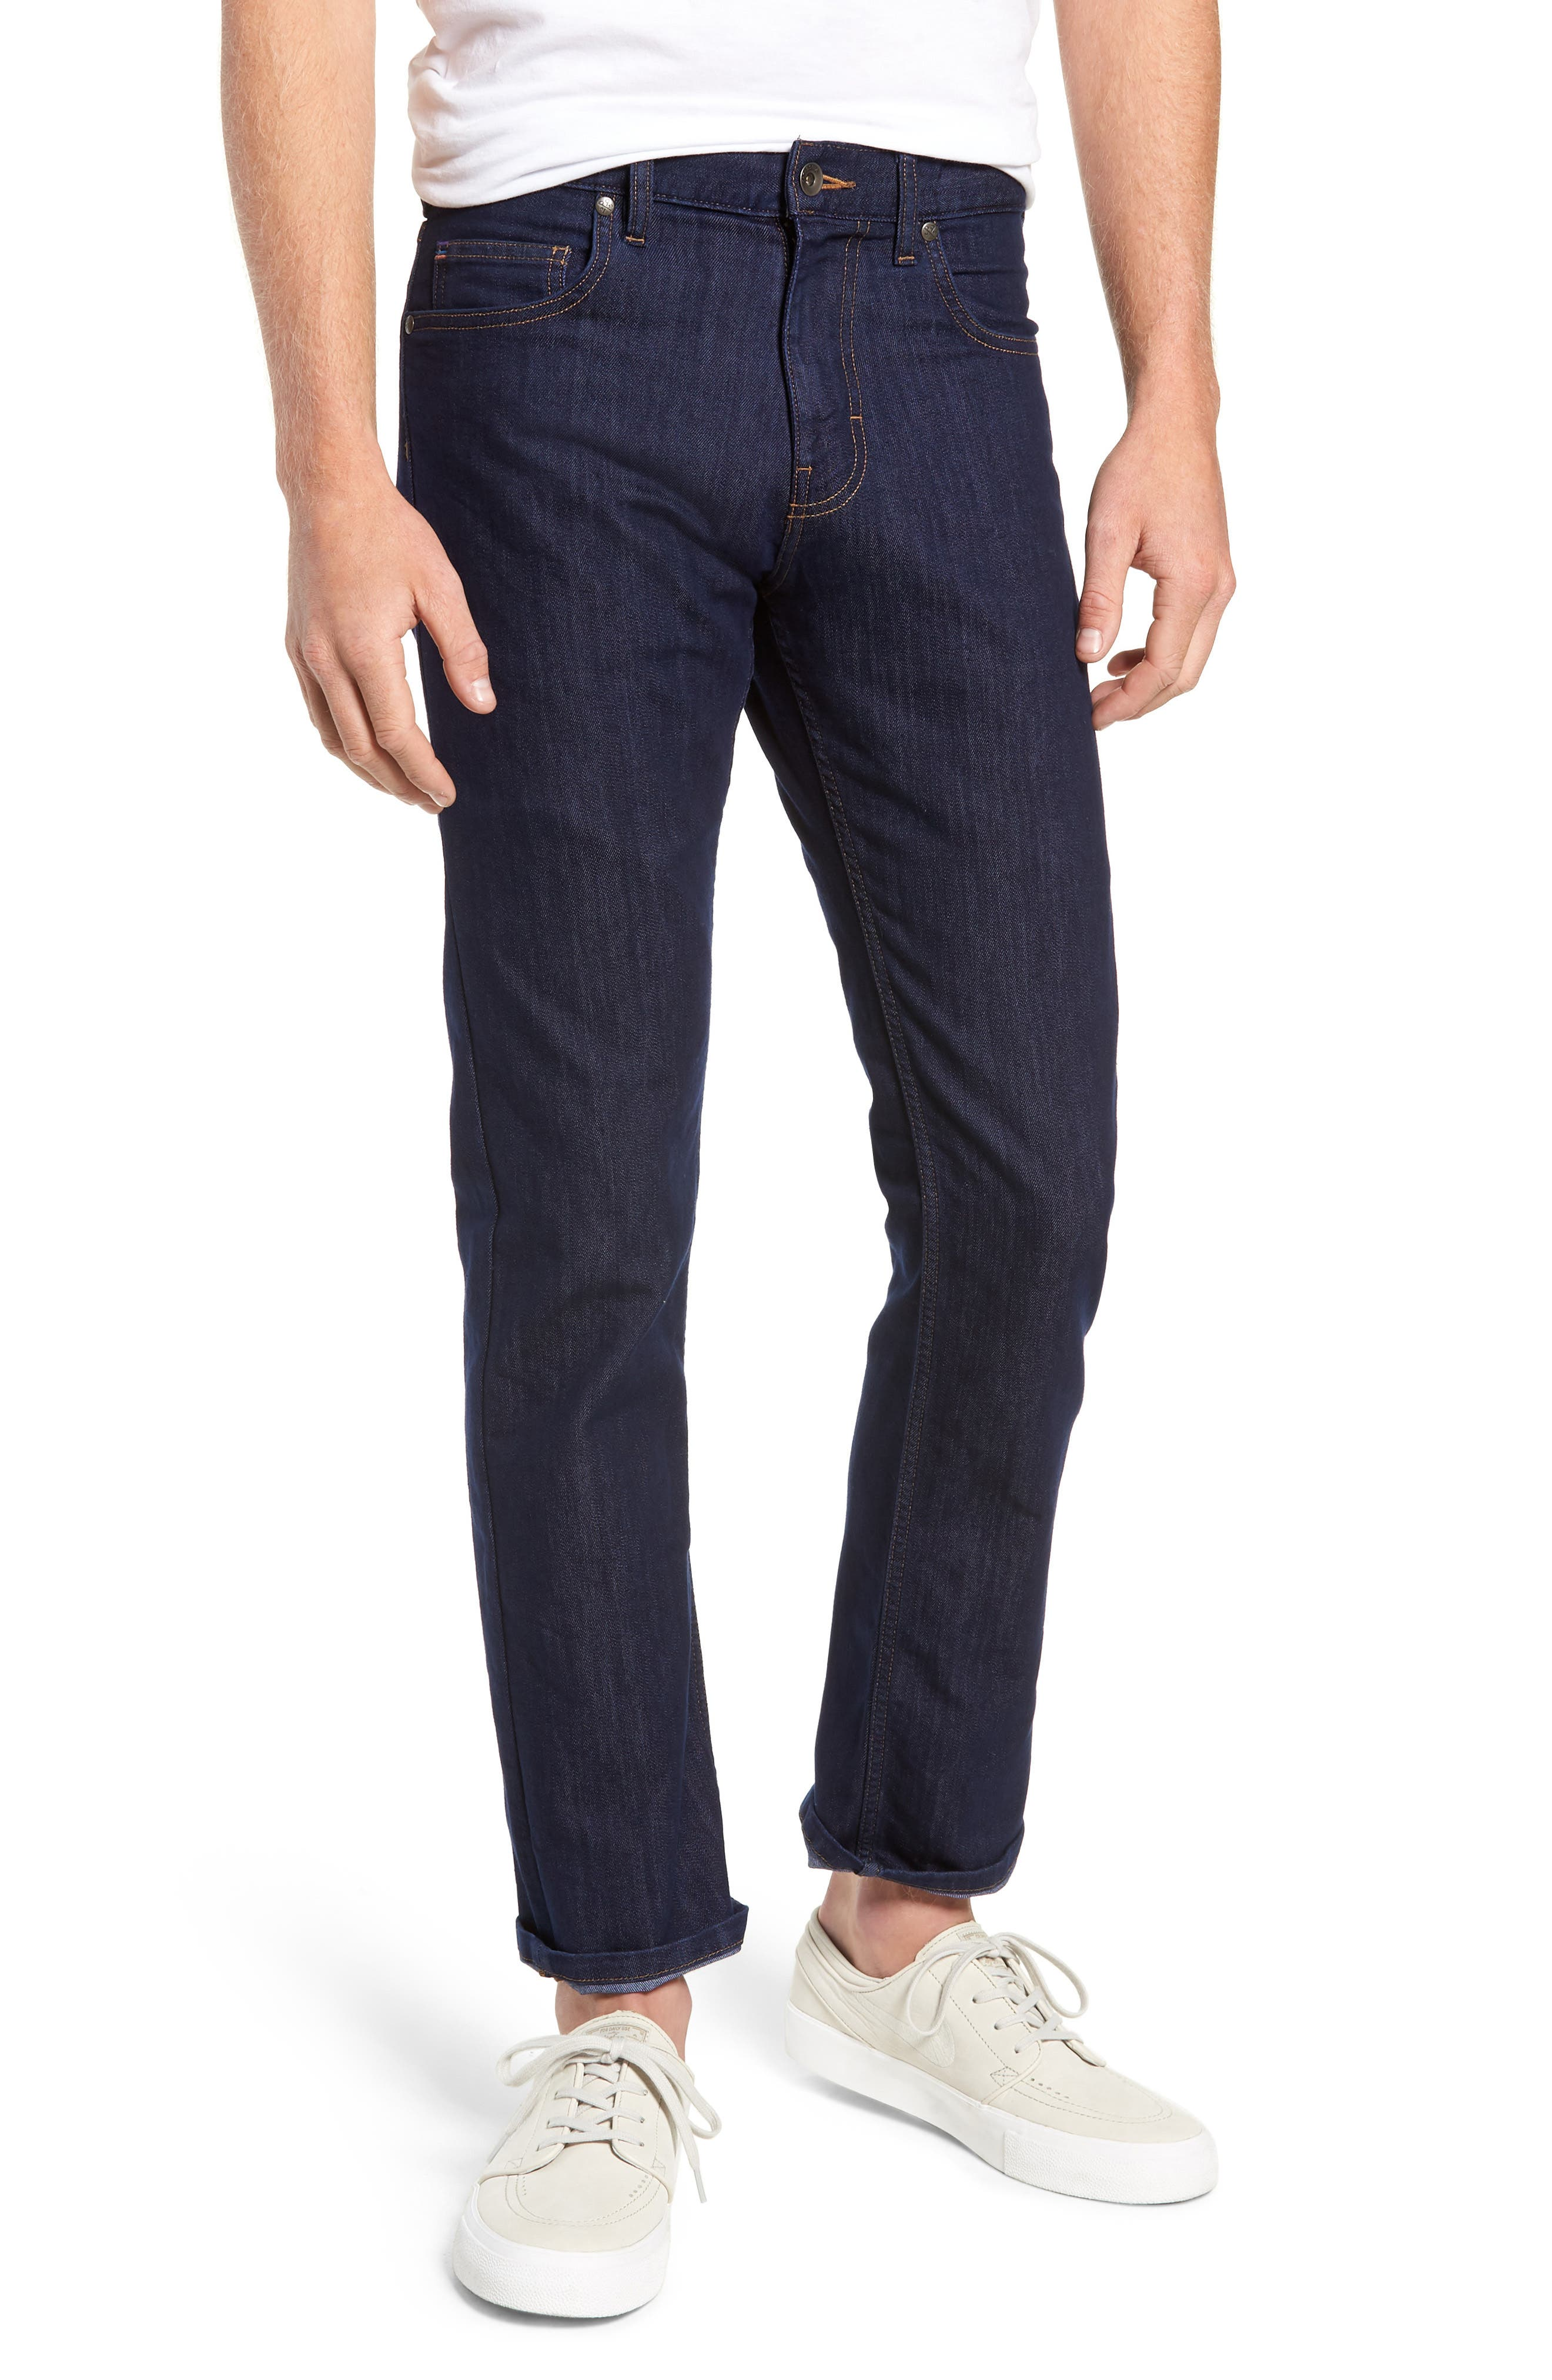 Straight Leg Performance Jeans,                             Main thumbnail 1, color,                             DARK DENIM